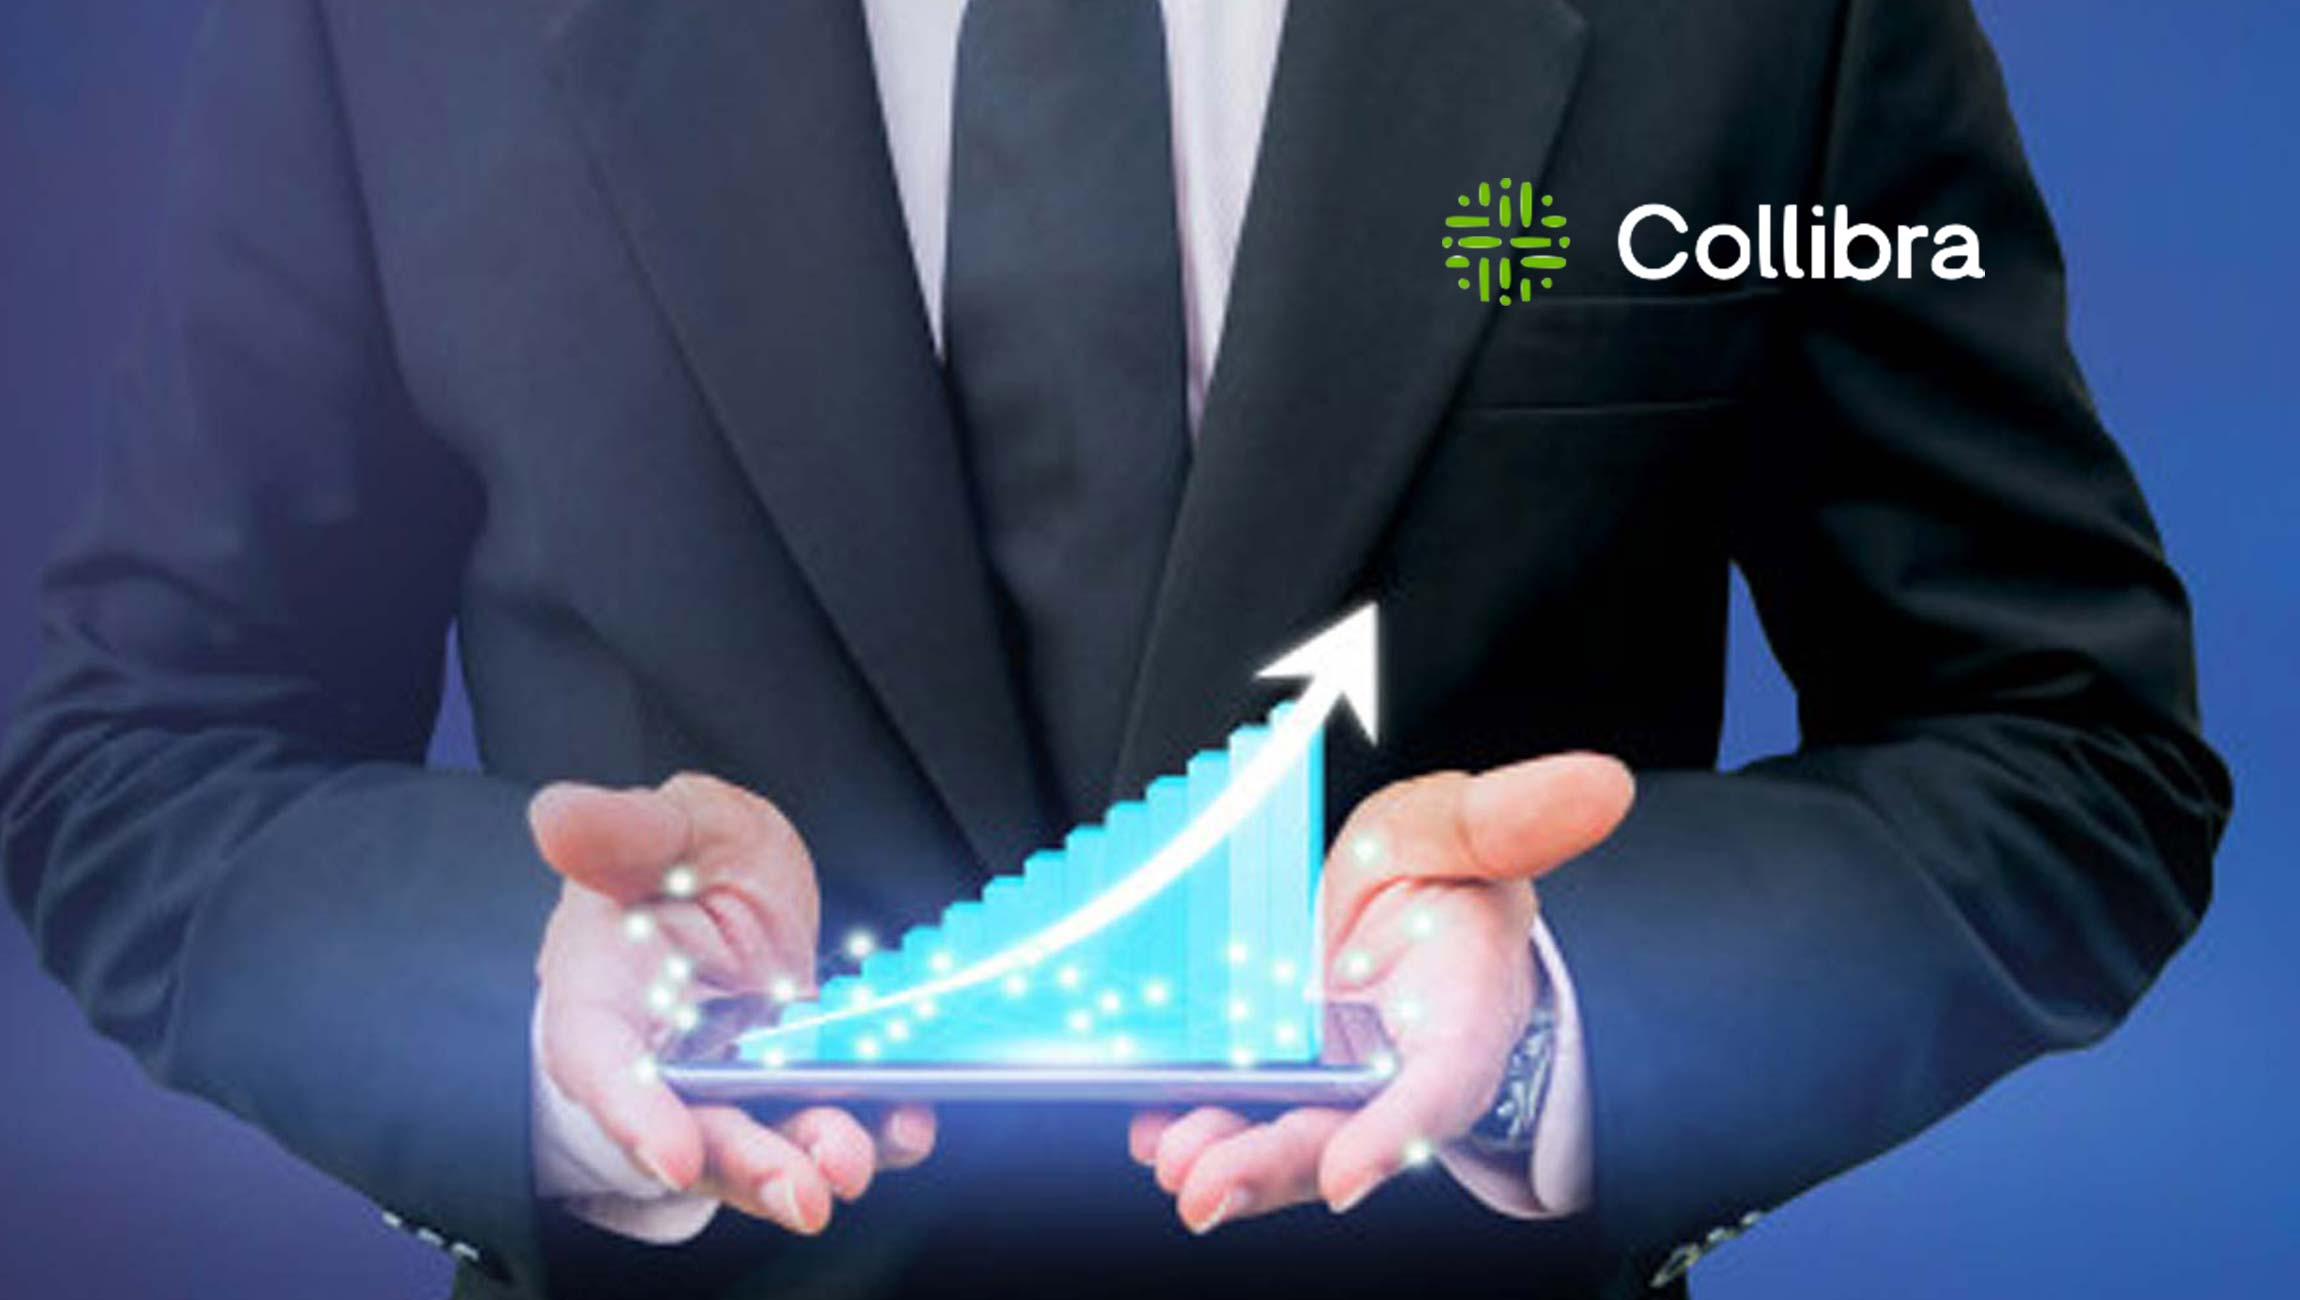 Collibra Strengthens Executive Leadership Team to Support Continued Company Growth